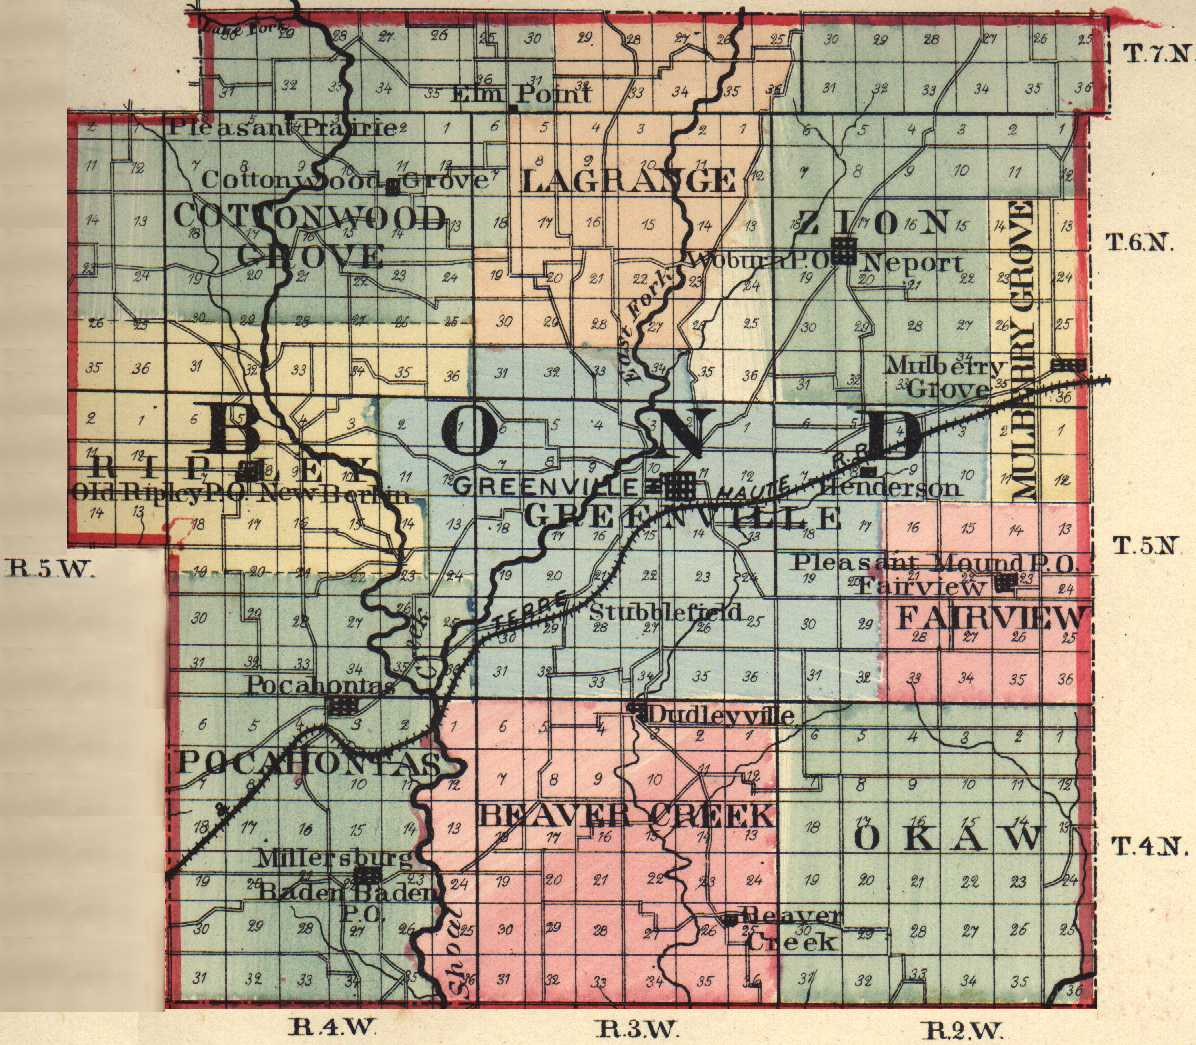 The USGenWeb Archives Digital Map Liry - Illinois Maps Index. on map of lake county il, map of gallatin county il, map of henderson county il, map of st. clair county il, map of rock island county il, map of jo daviess county il, map of franklin county il, map of jersey county il, map of union county il, map of dupage county il, map of jasper county il, map of mcdonough county il, map of stephenson county il, map of cook county il, towns in kane county il, map of schuyler county il, map of woodford county il, map of richland county il, map of bond county il, map of stark county il,